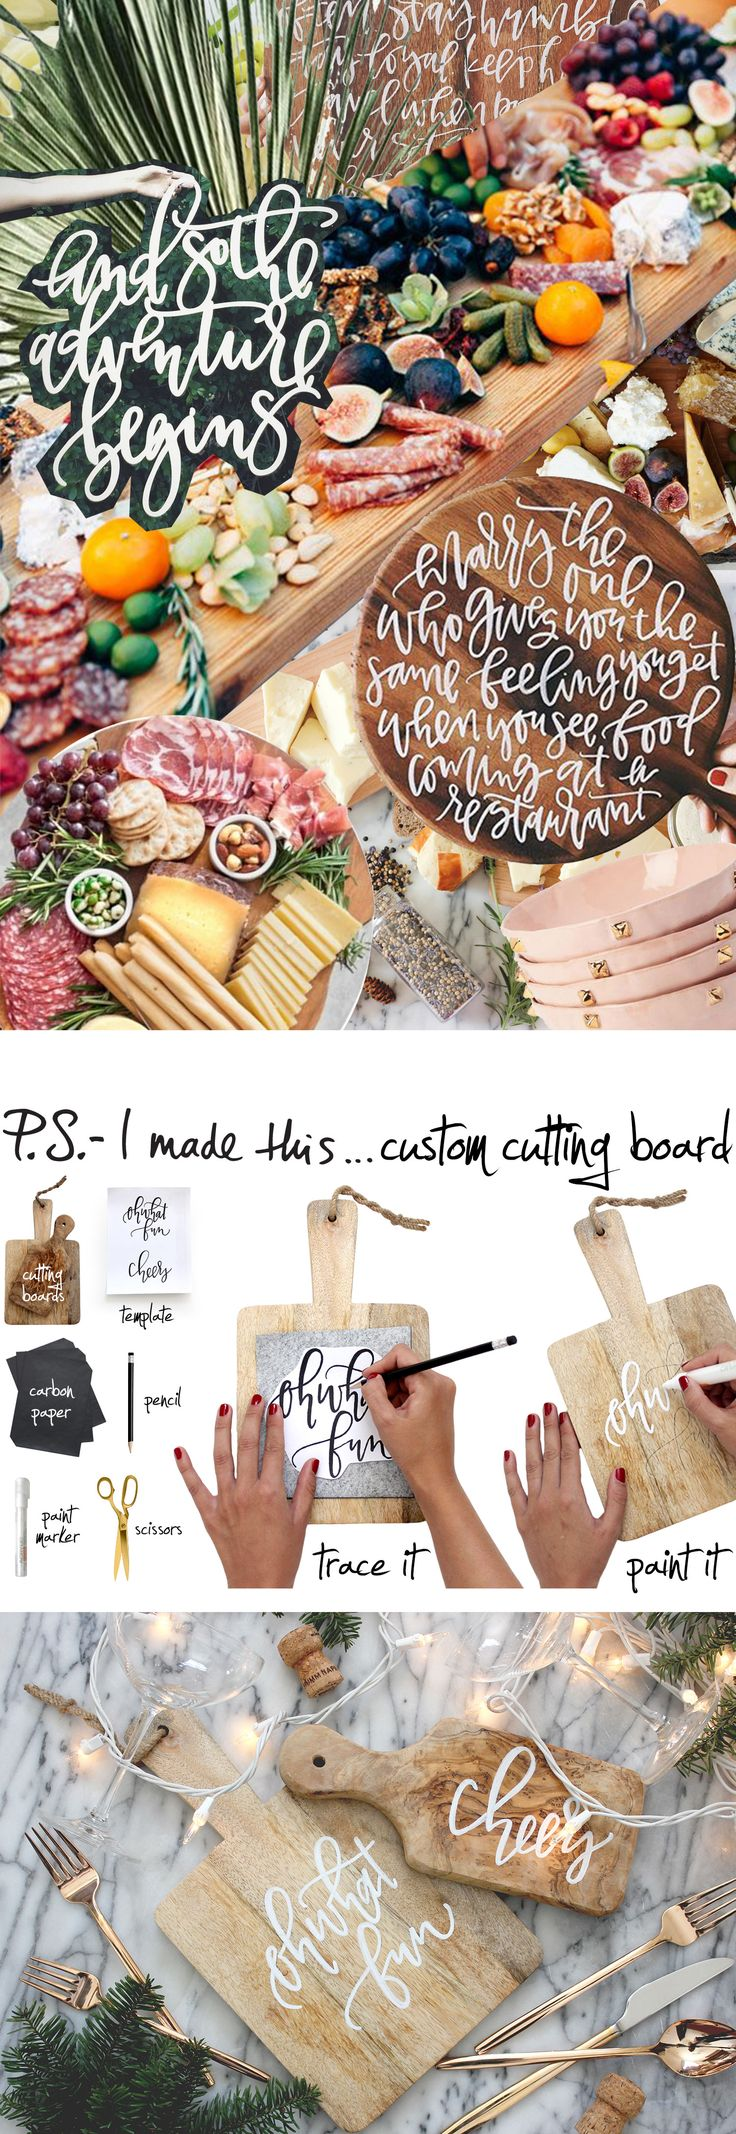 P.S.- I made this...Custom Cutting Board with @AFabulousFete #PSIMADETHIS #DIY